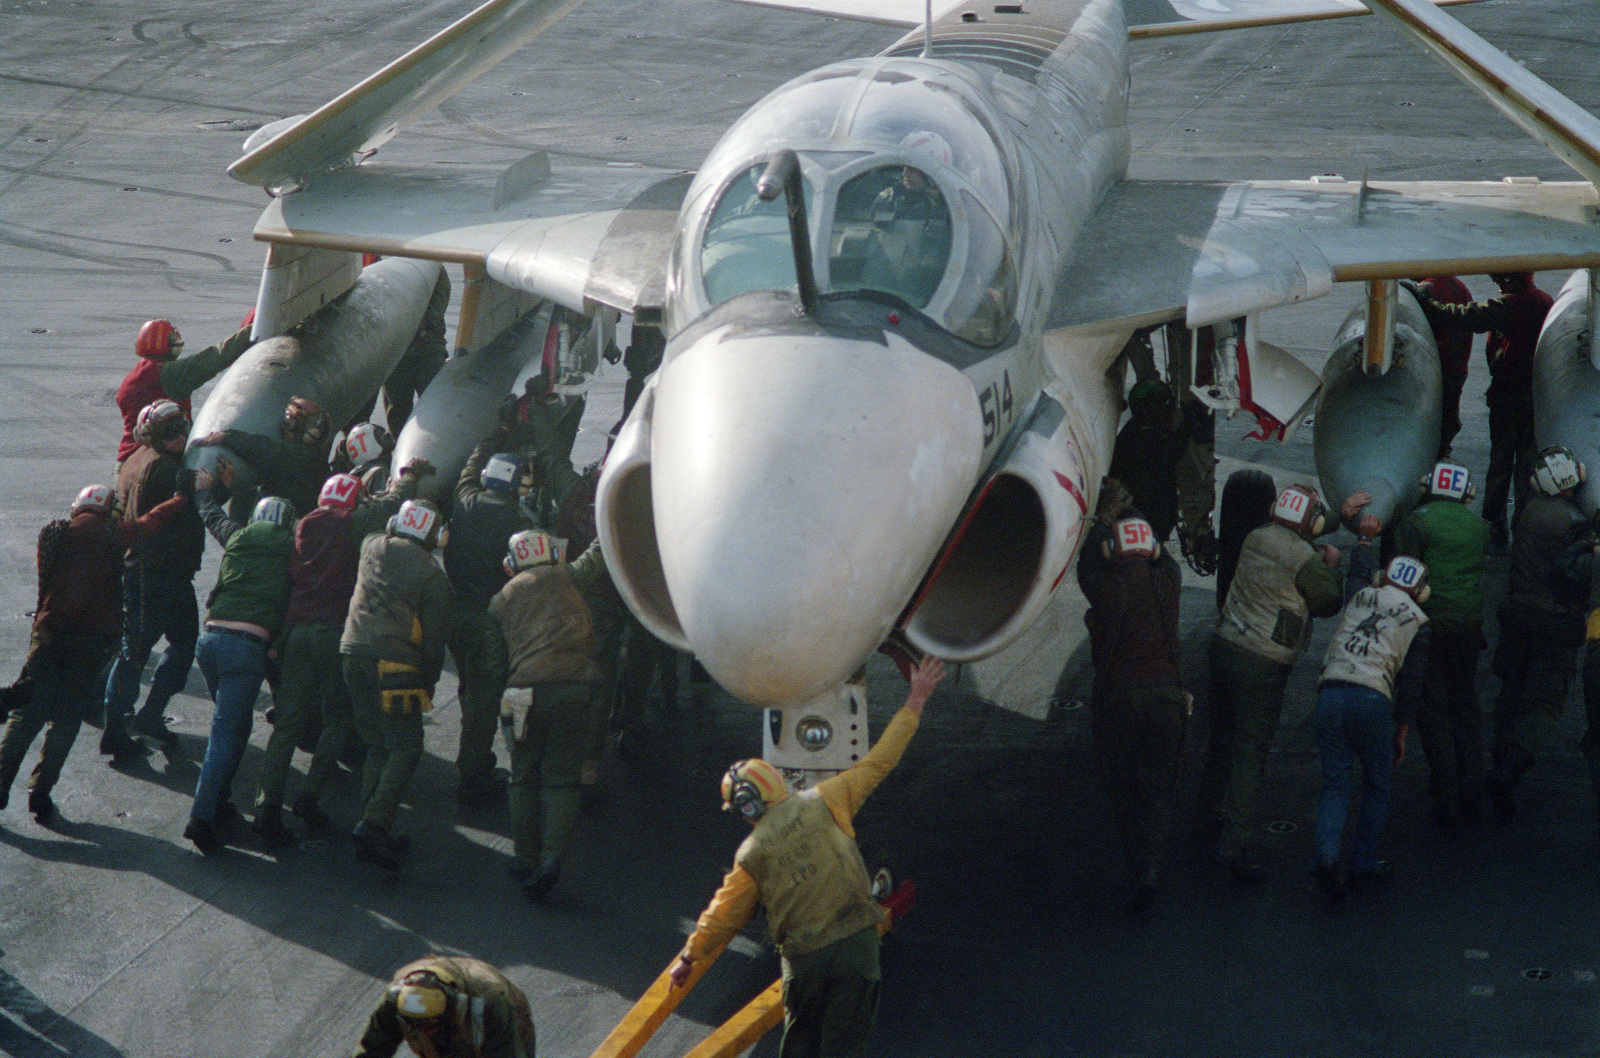 An A-6E Intruder aircraft is maneuvered into place on the flight deck of the aircraft carrier USS FORRESTAL (CV 59) in the North Atlantic Ocean during Exercise WEST WIND 88